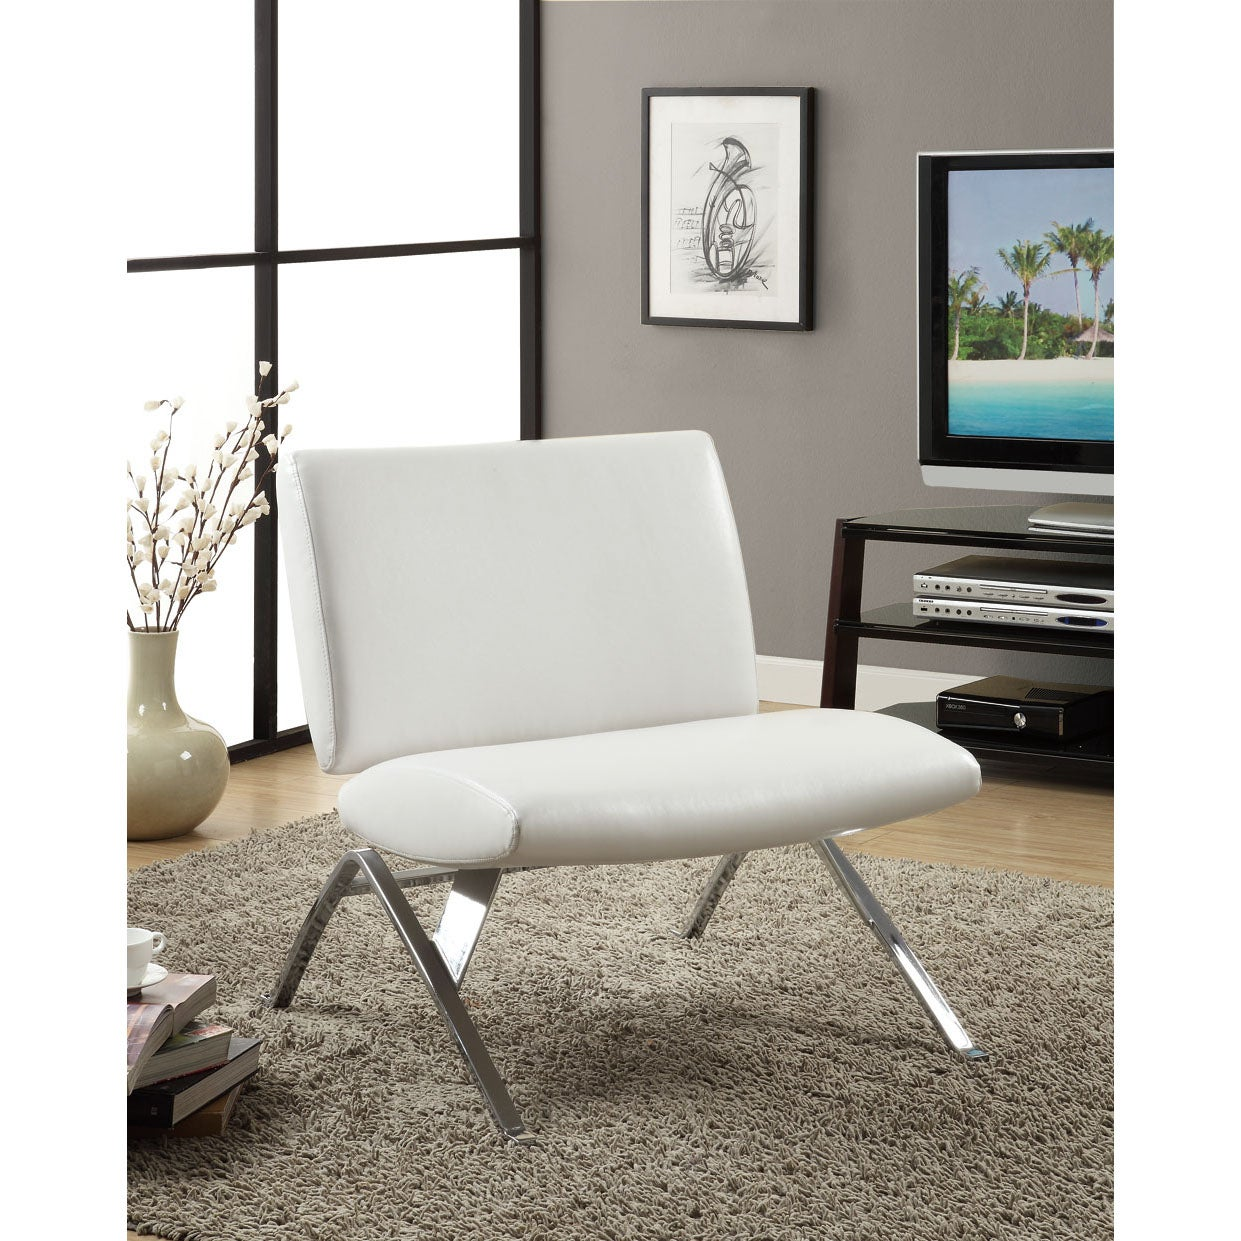 Home Chair: White Leather-Look / Chrome Metal Modern Accent Chair